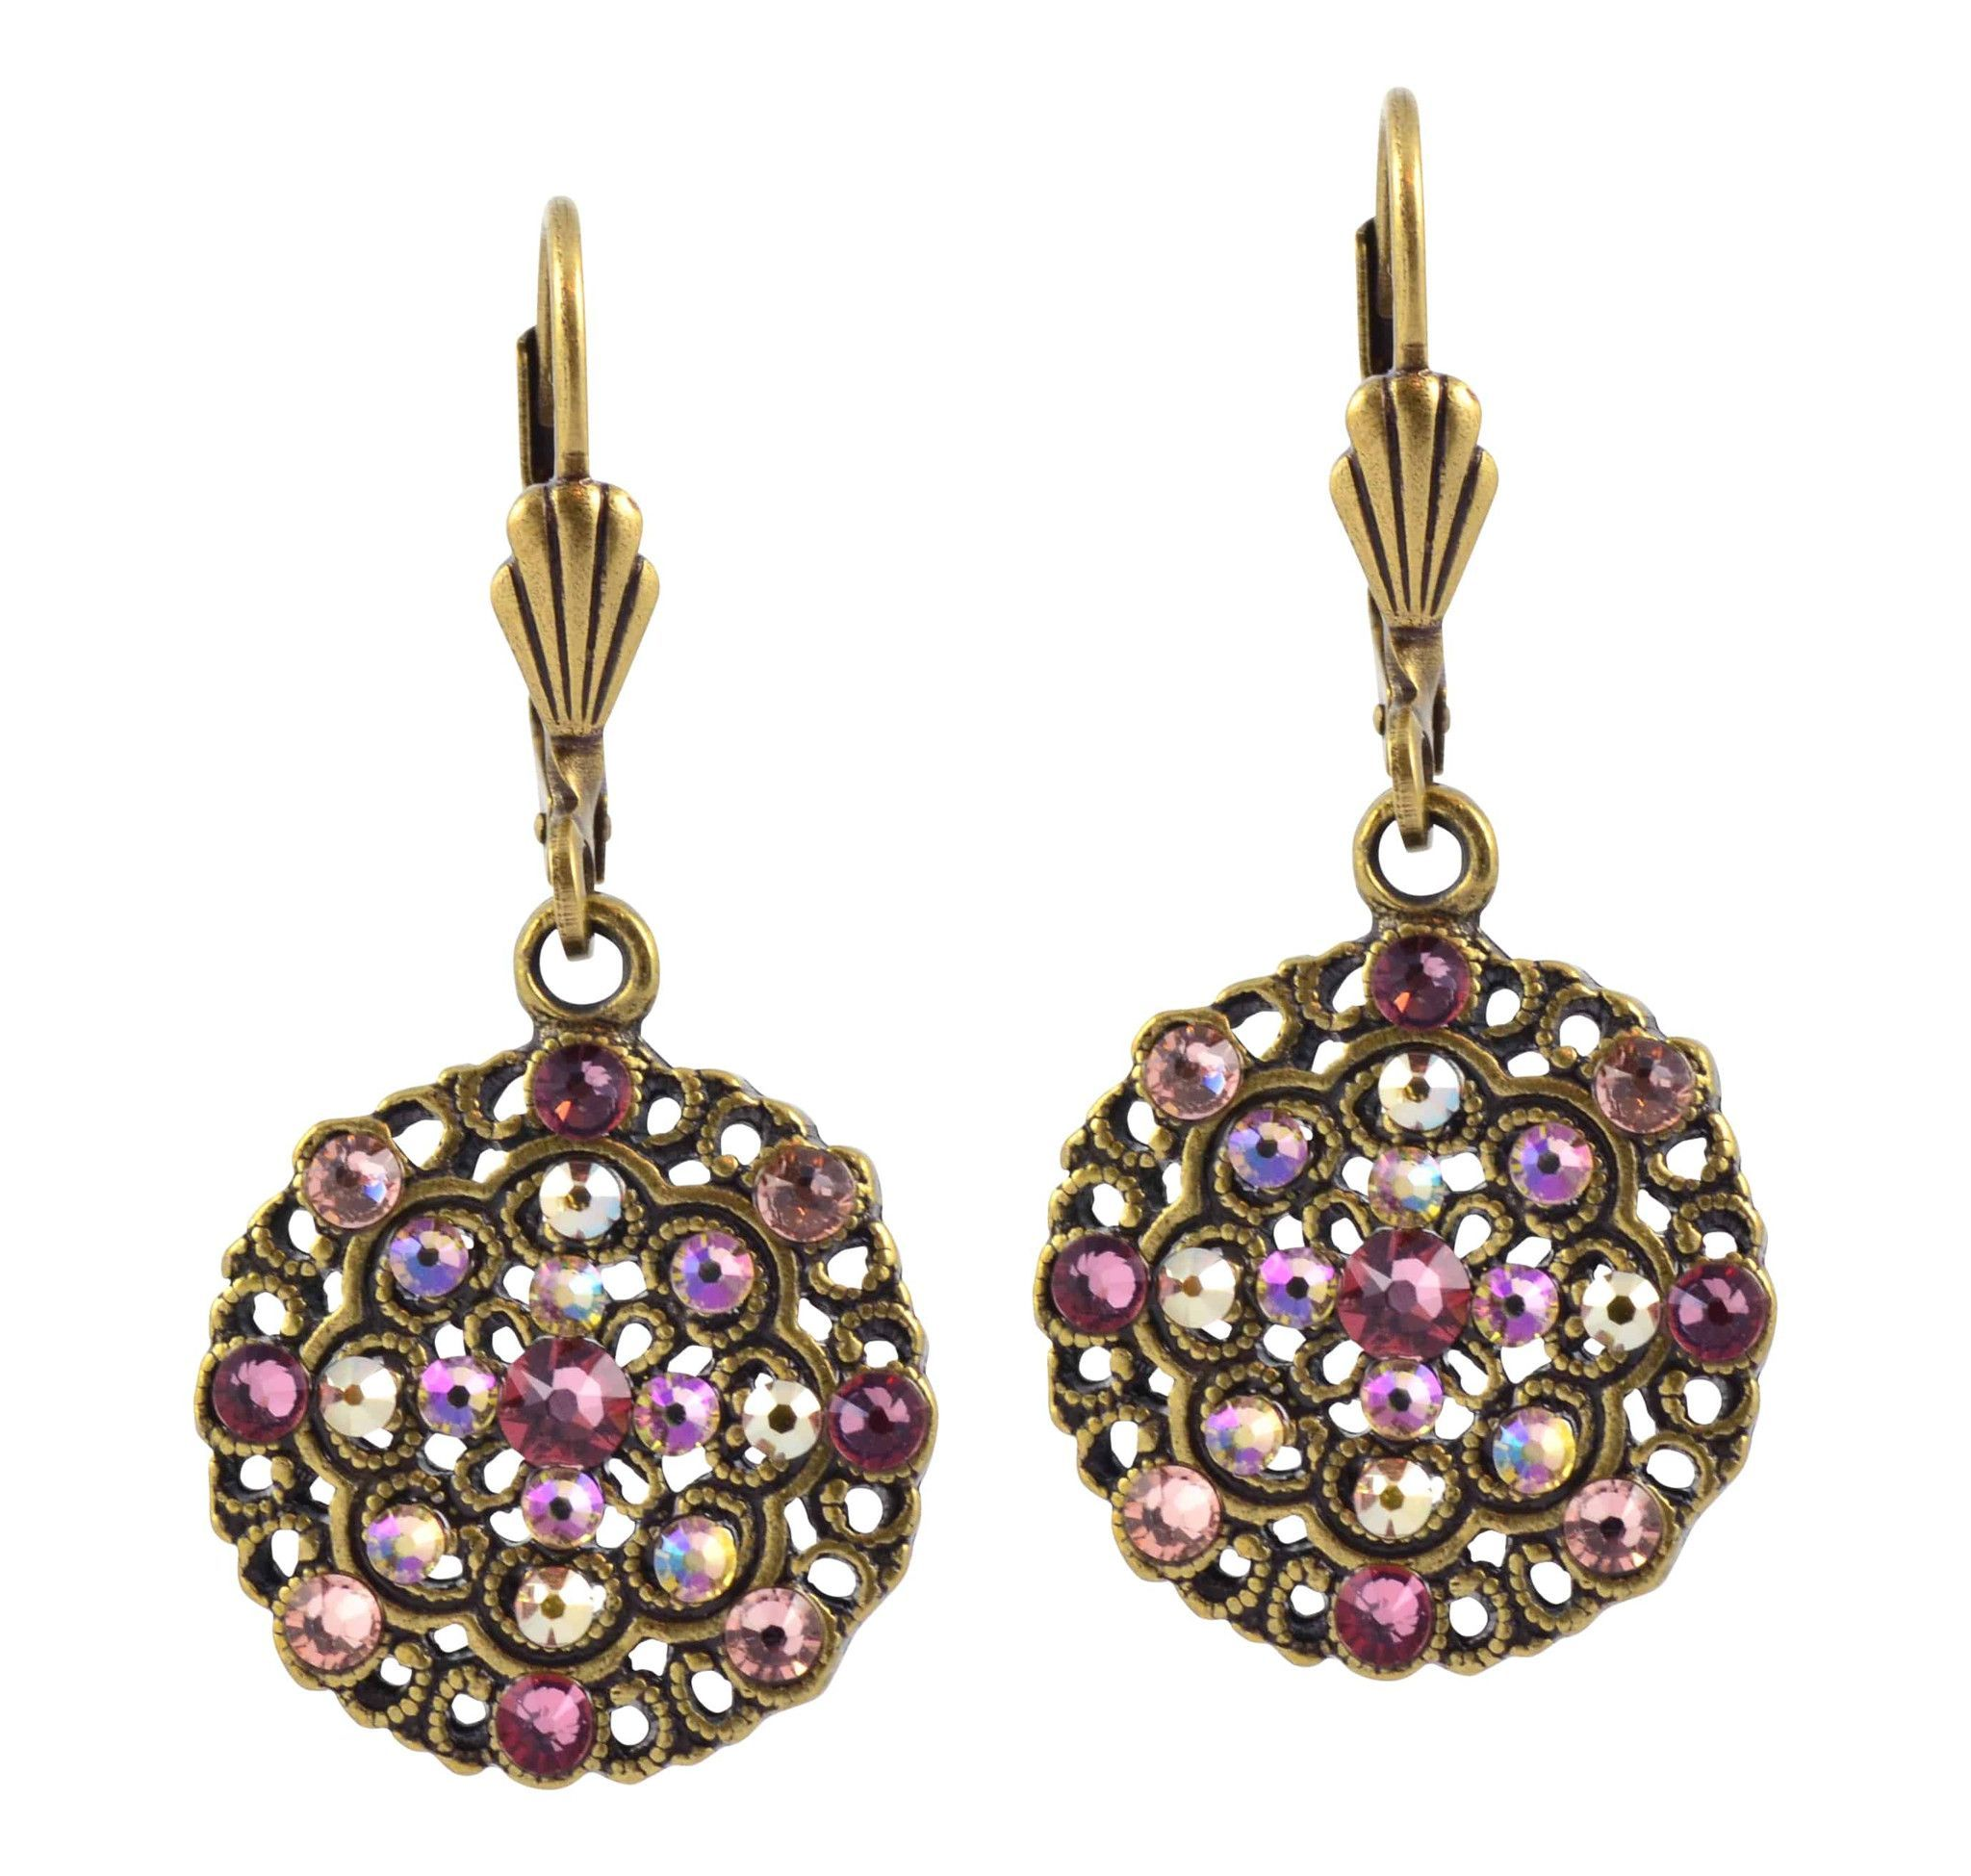 Anne Koplik Round Earrings, Antique Gold Plated with Pink and Green Swarovski Crystal ER4641BLR